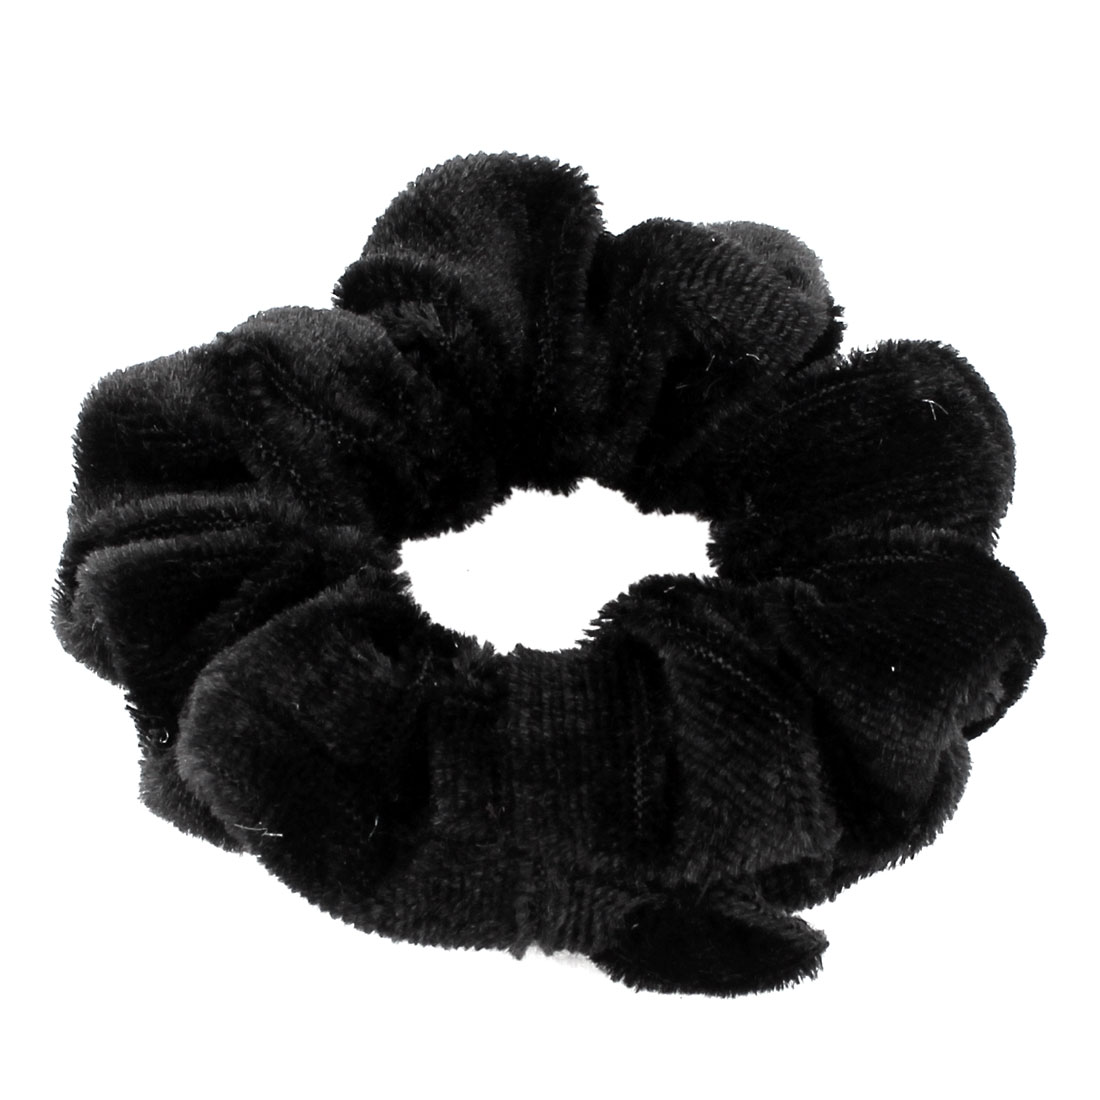 Pure Black Velvet Wrap Floral Elastic Hair Band Ponytail Holder for Woman